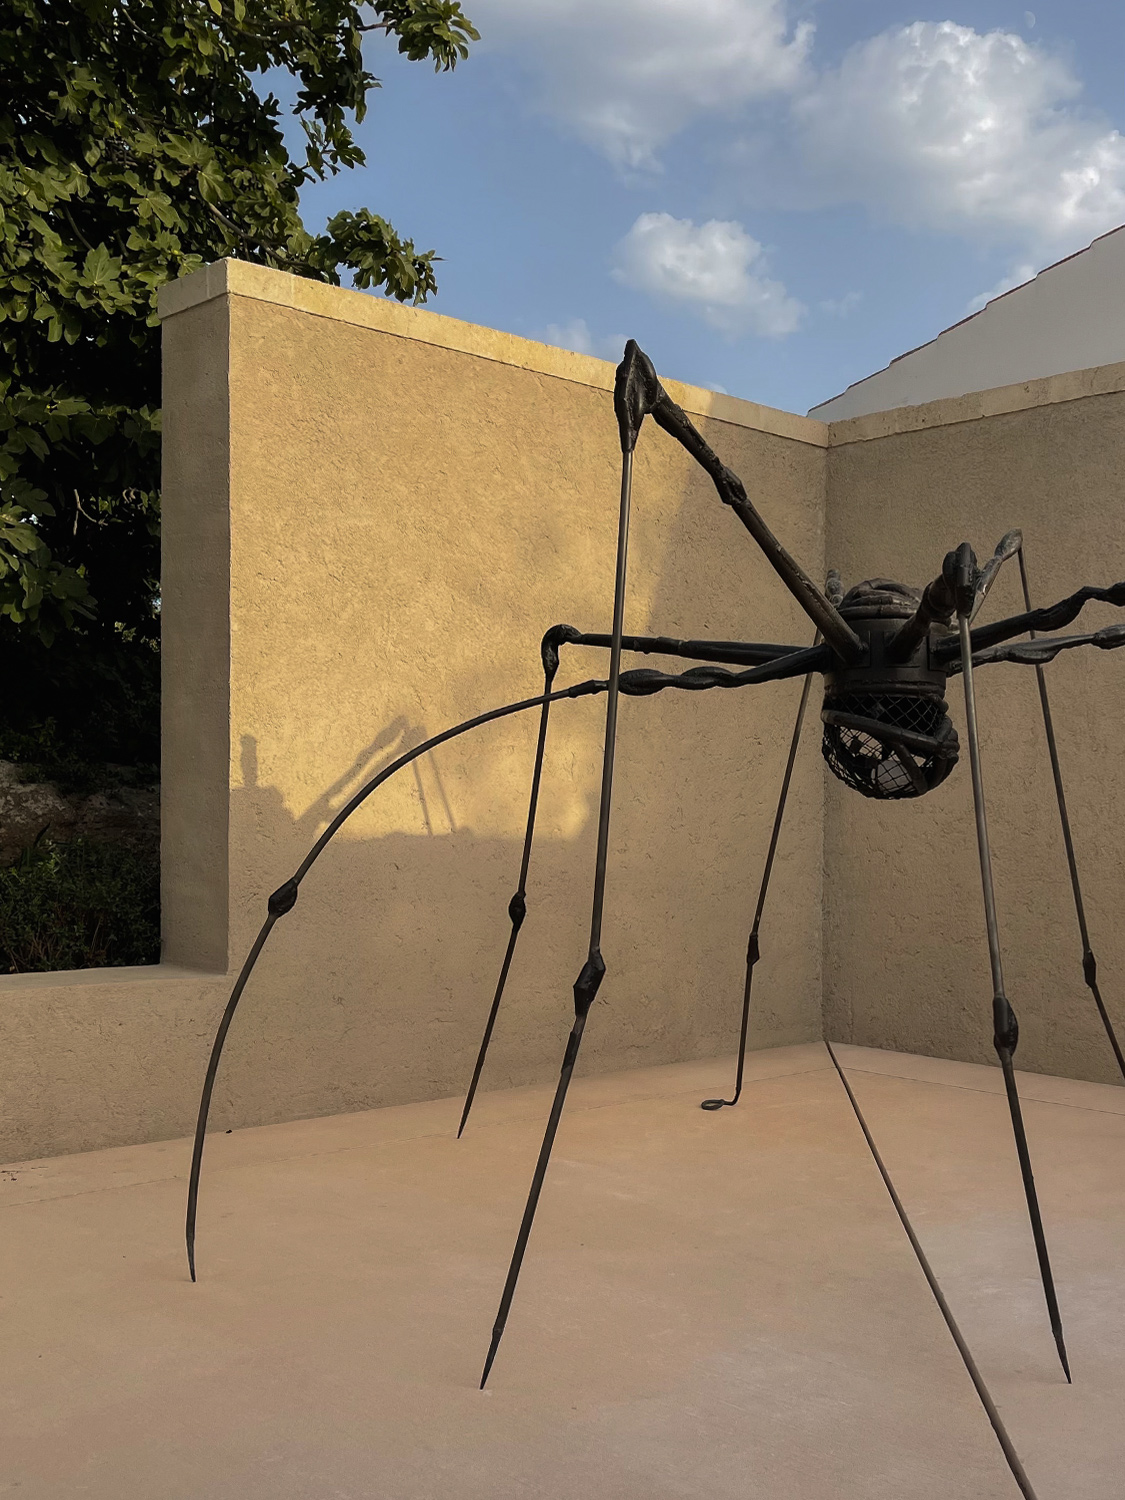 hauser-and-wirth-menorca-museo-lugares-slowkind-04